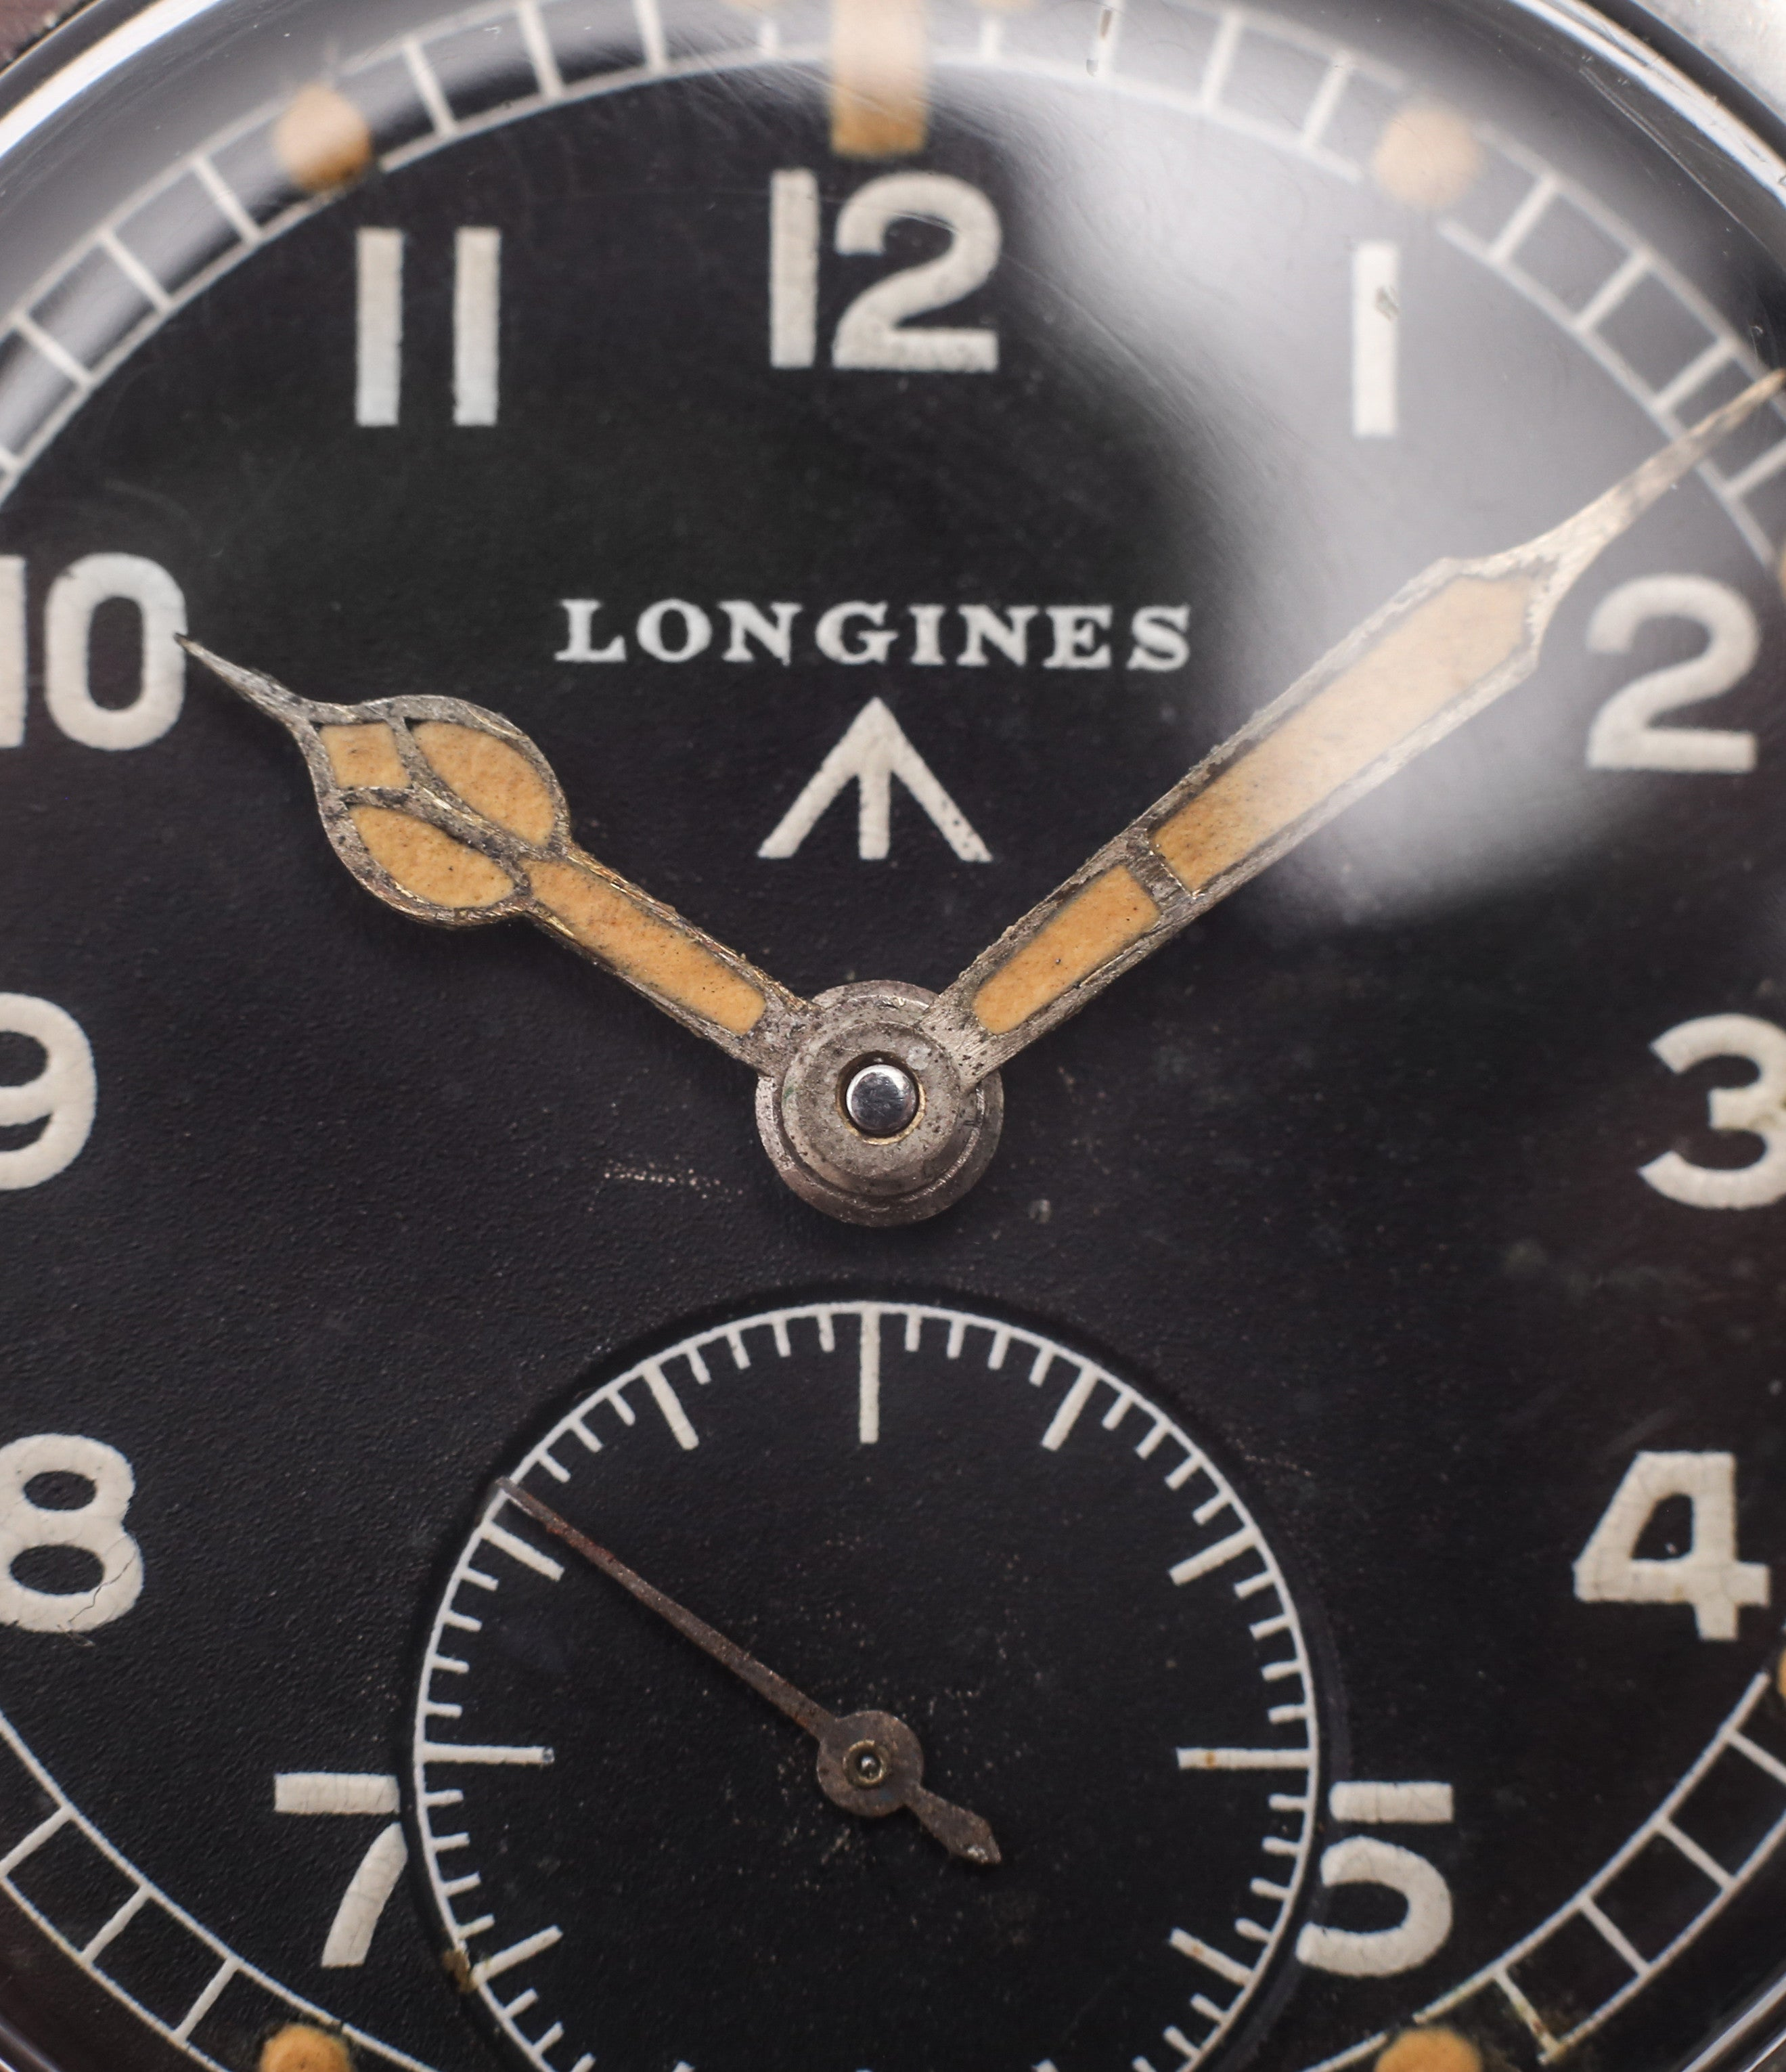 black dial Longines WWW MoD British military vintage watch F6870 for sale online at A Collected Man London vintage watches specialist